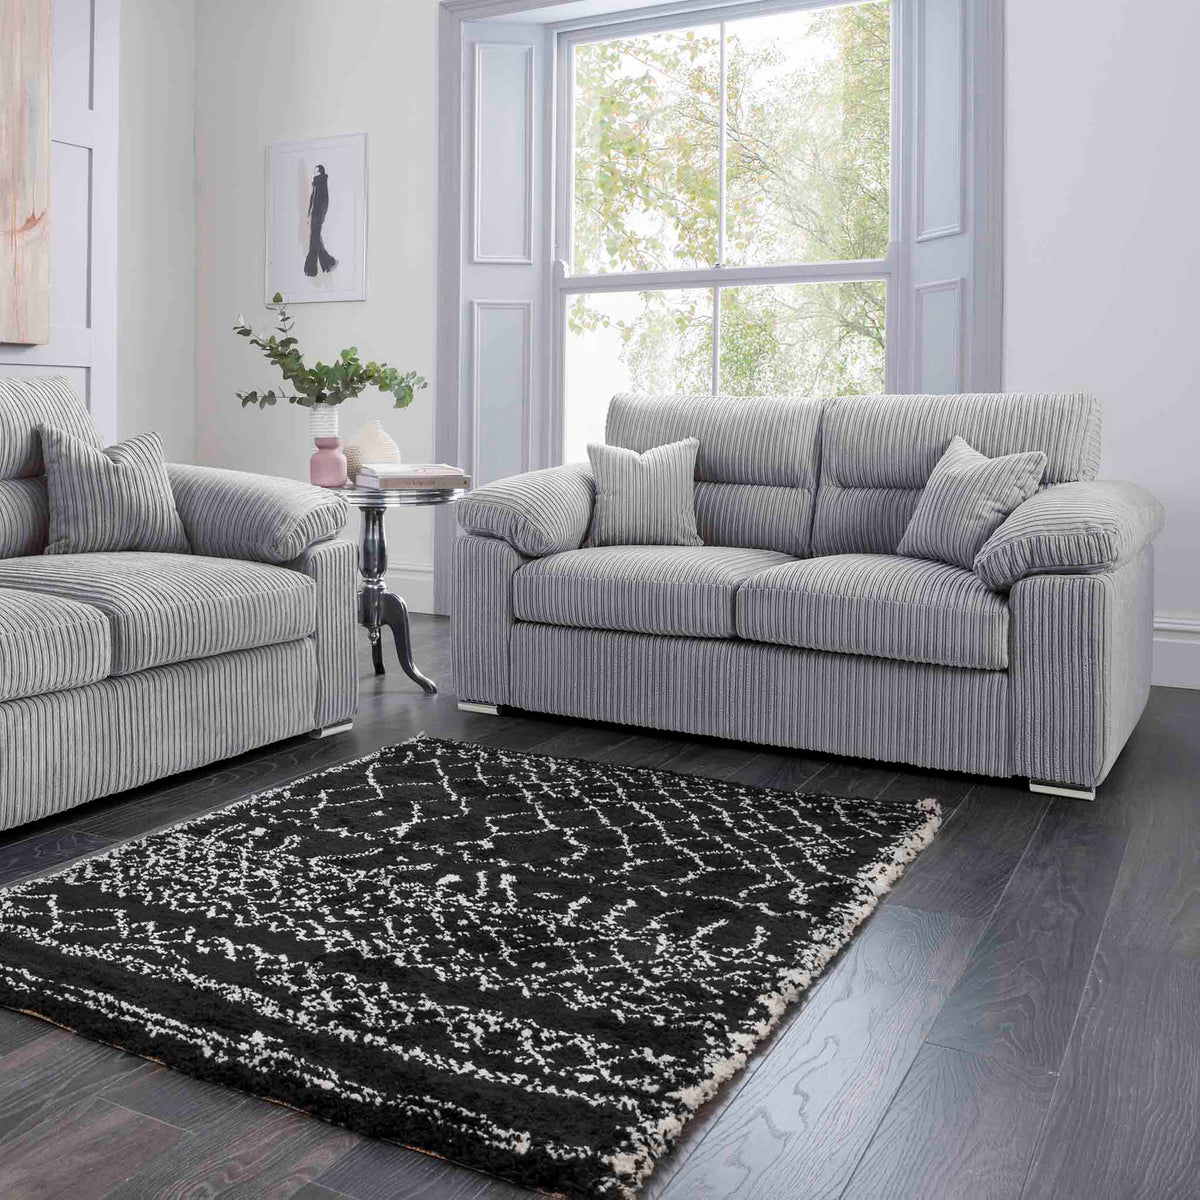 Amalfi Silver 2 Seater Fabric Sofa room setting